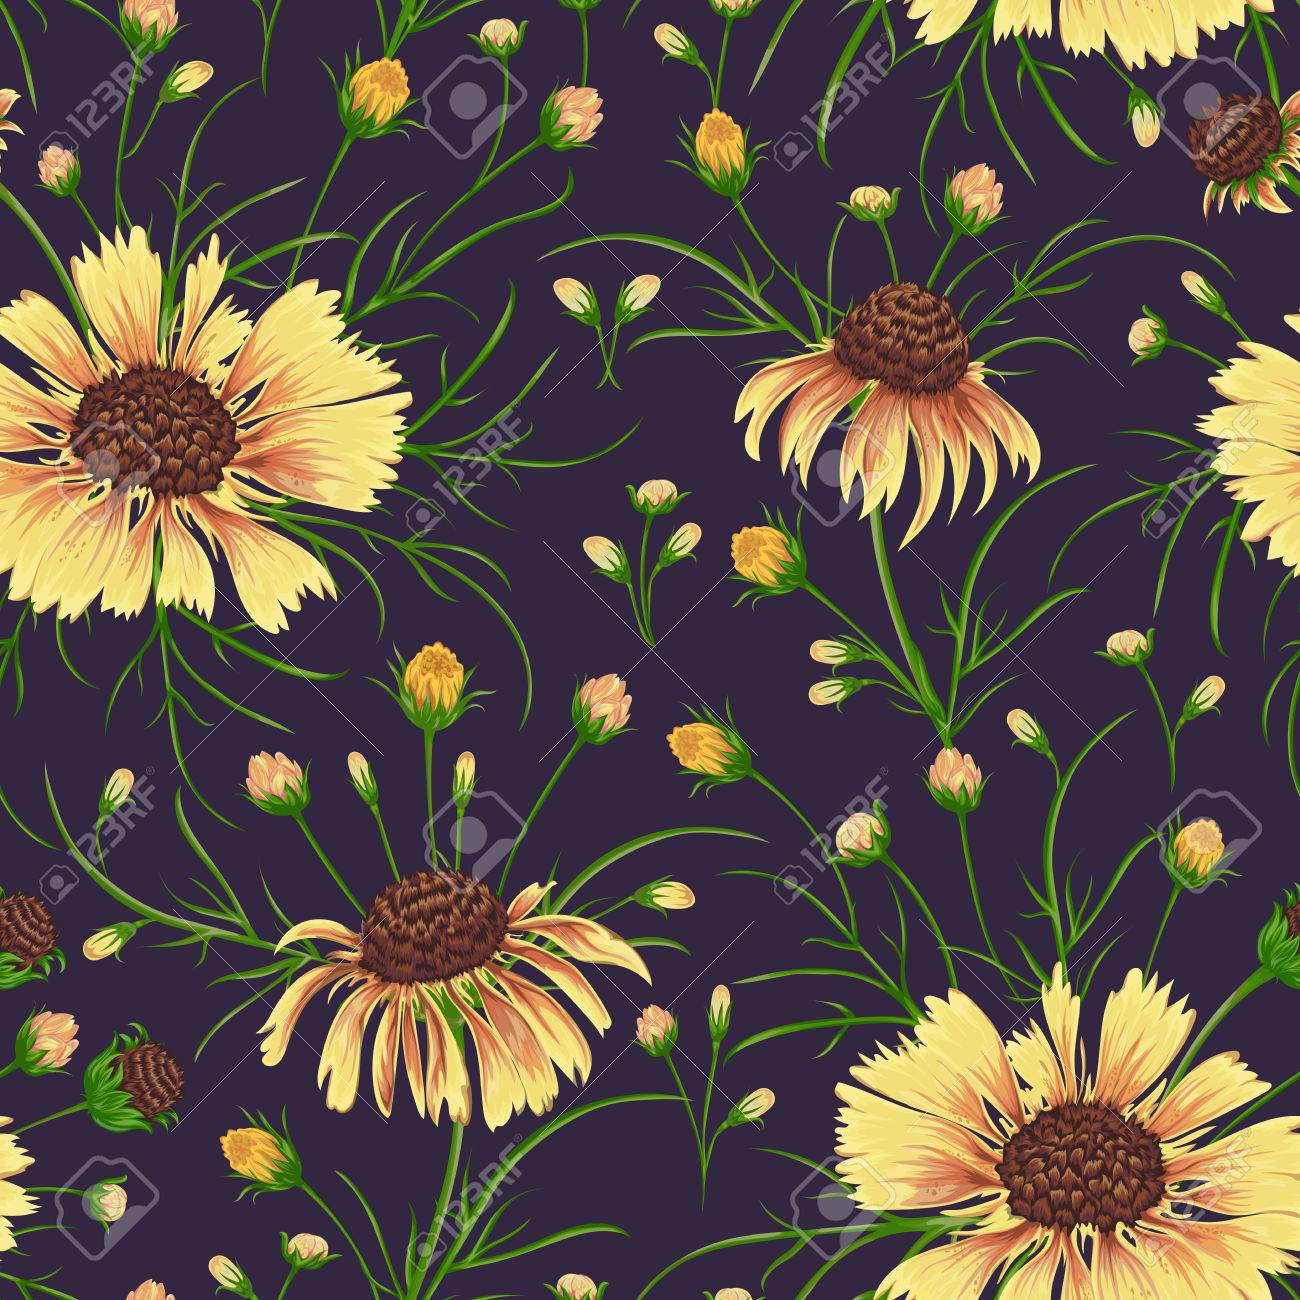 Seamless Pattern With Chamomile Flowers Rustic Floral Background Vintage Vector Botanical Illustration In Watercolor